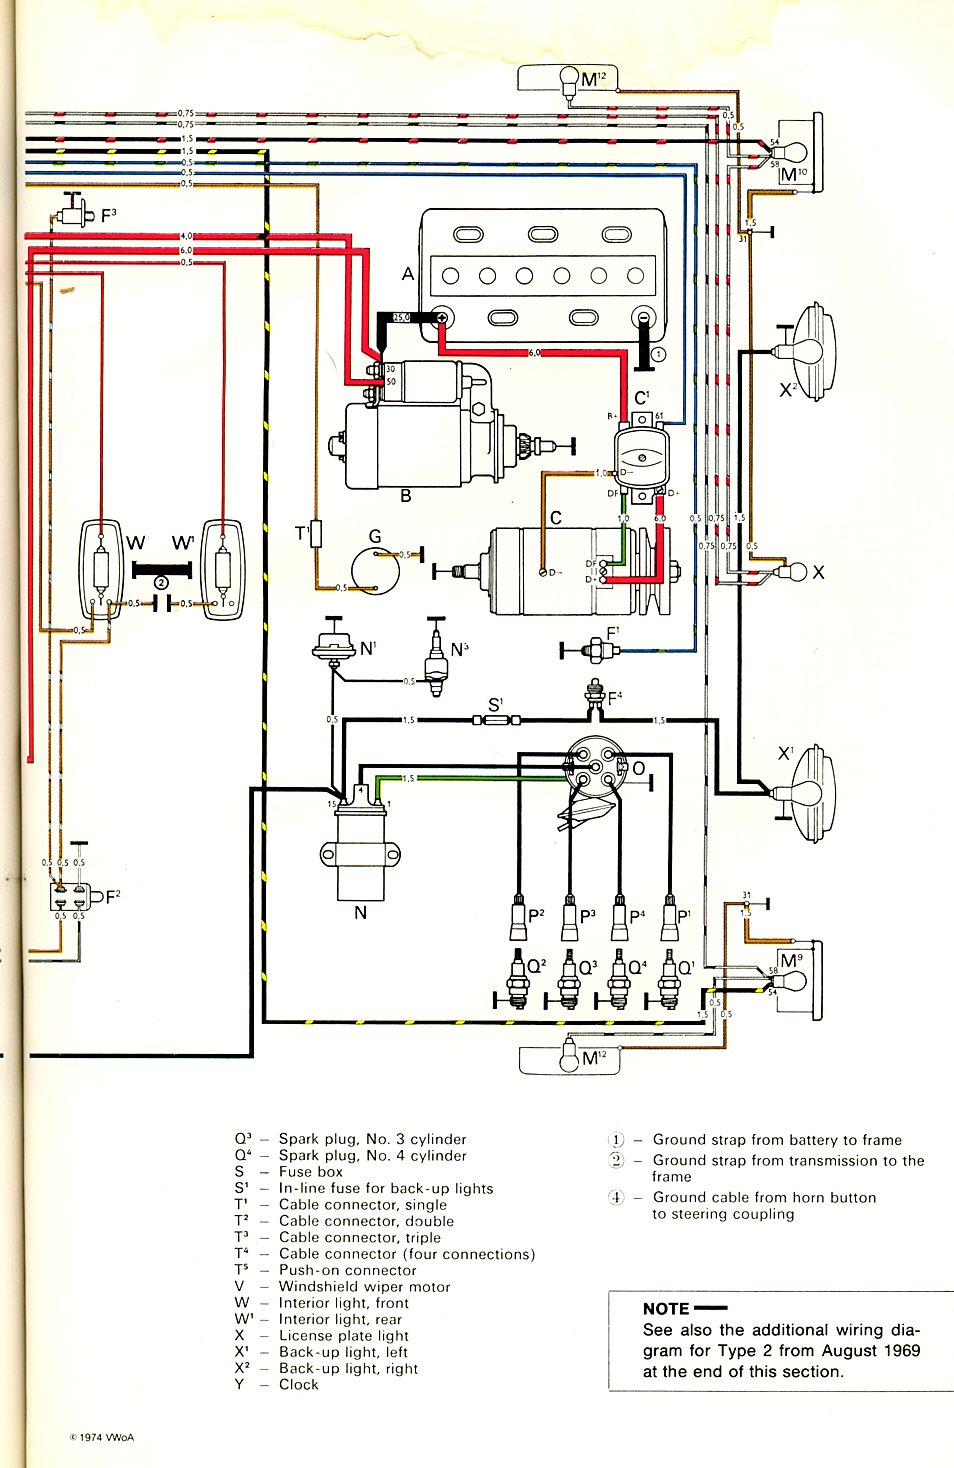 Type 2 Wiring Diagrams Vw Beetle Diagram 1980